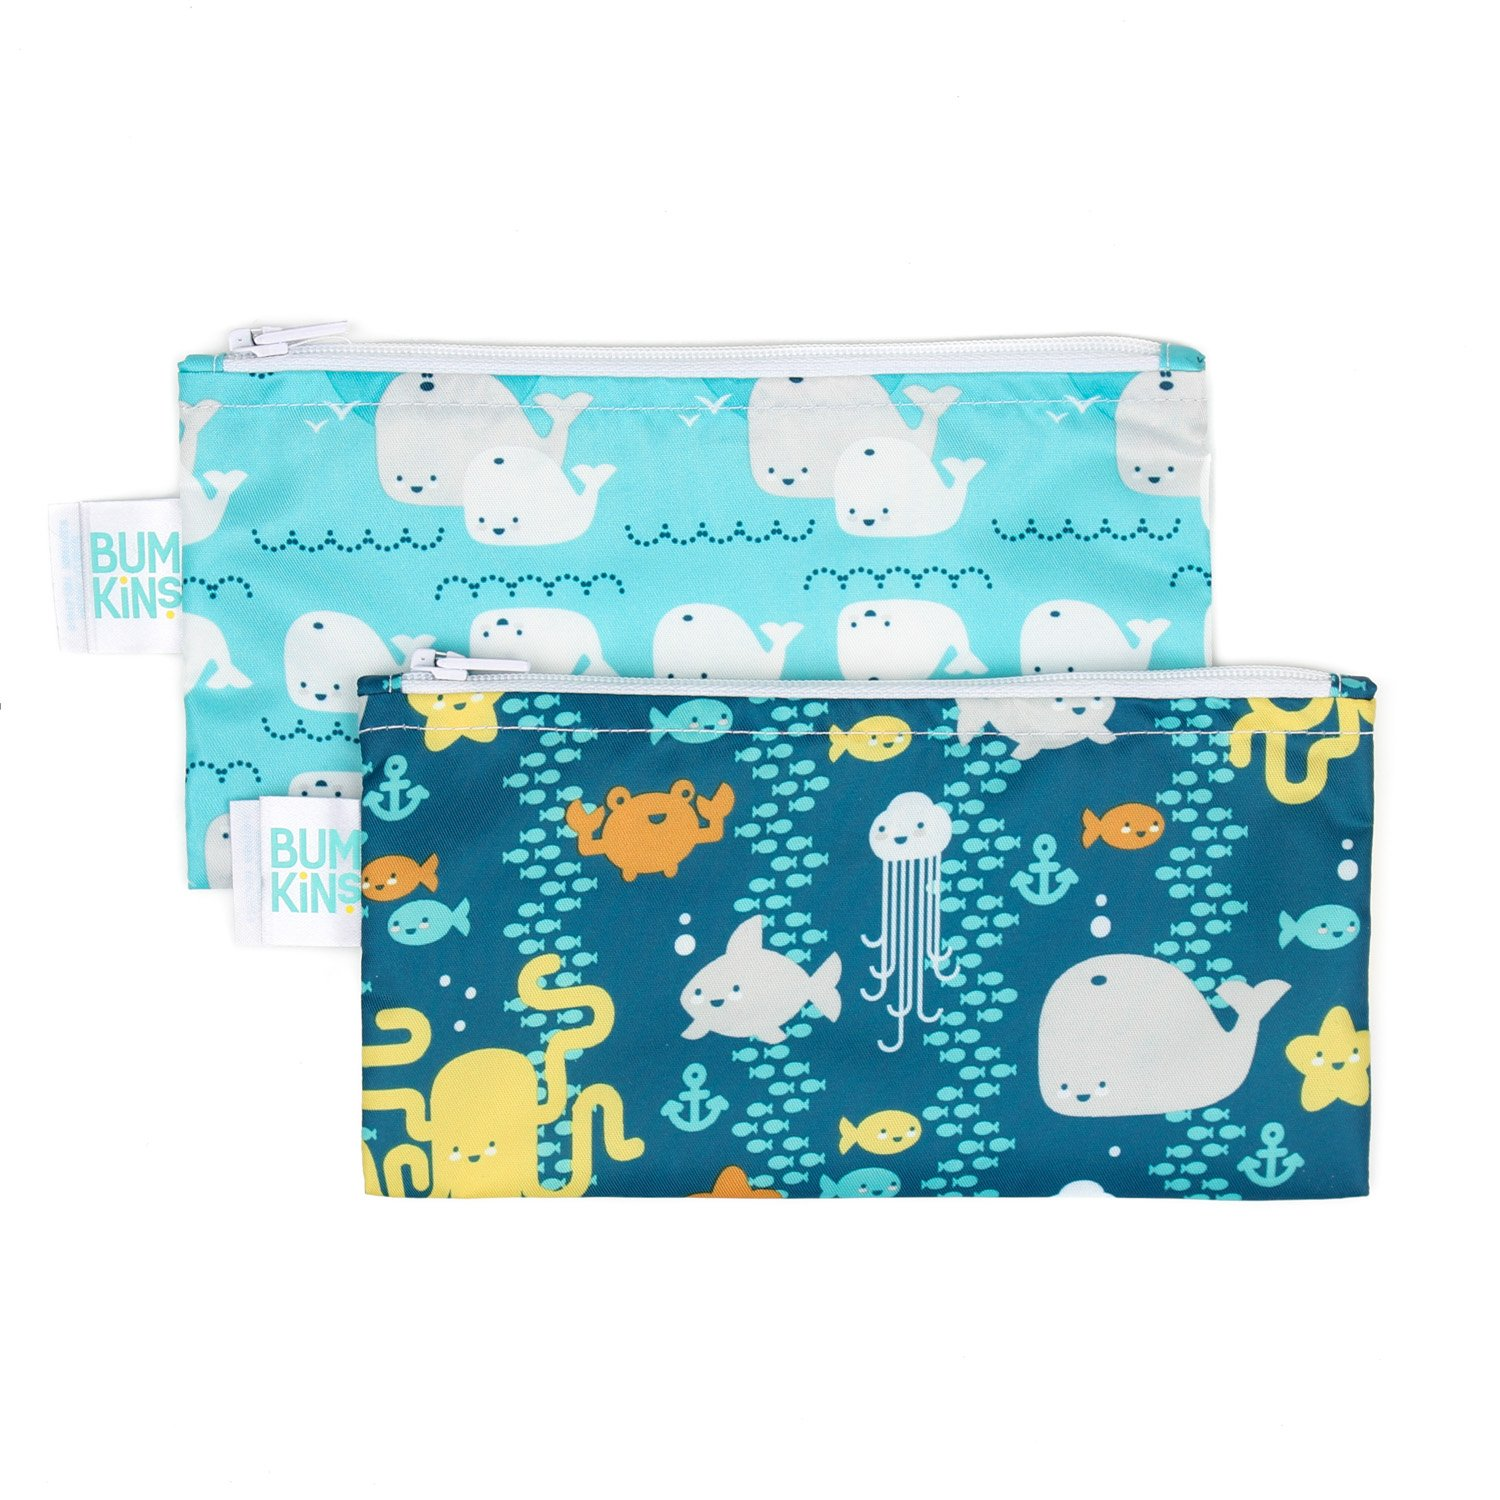 Bumkins Reusable Snack Bag Small 2 Pack, Sea Friends/Whales Away SBS2-B90